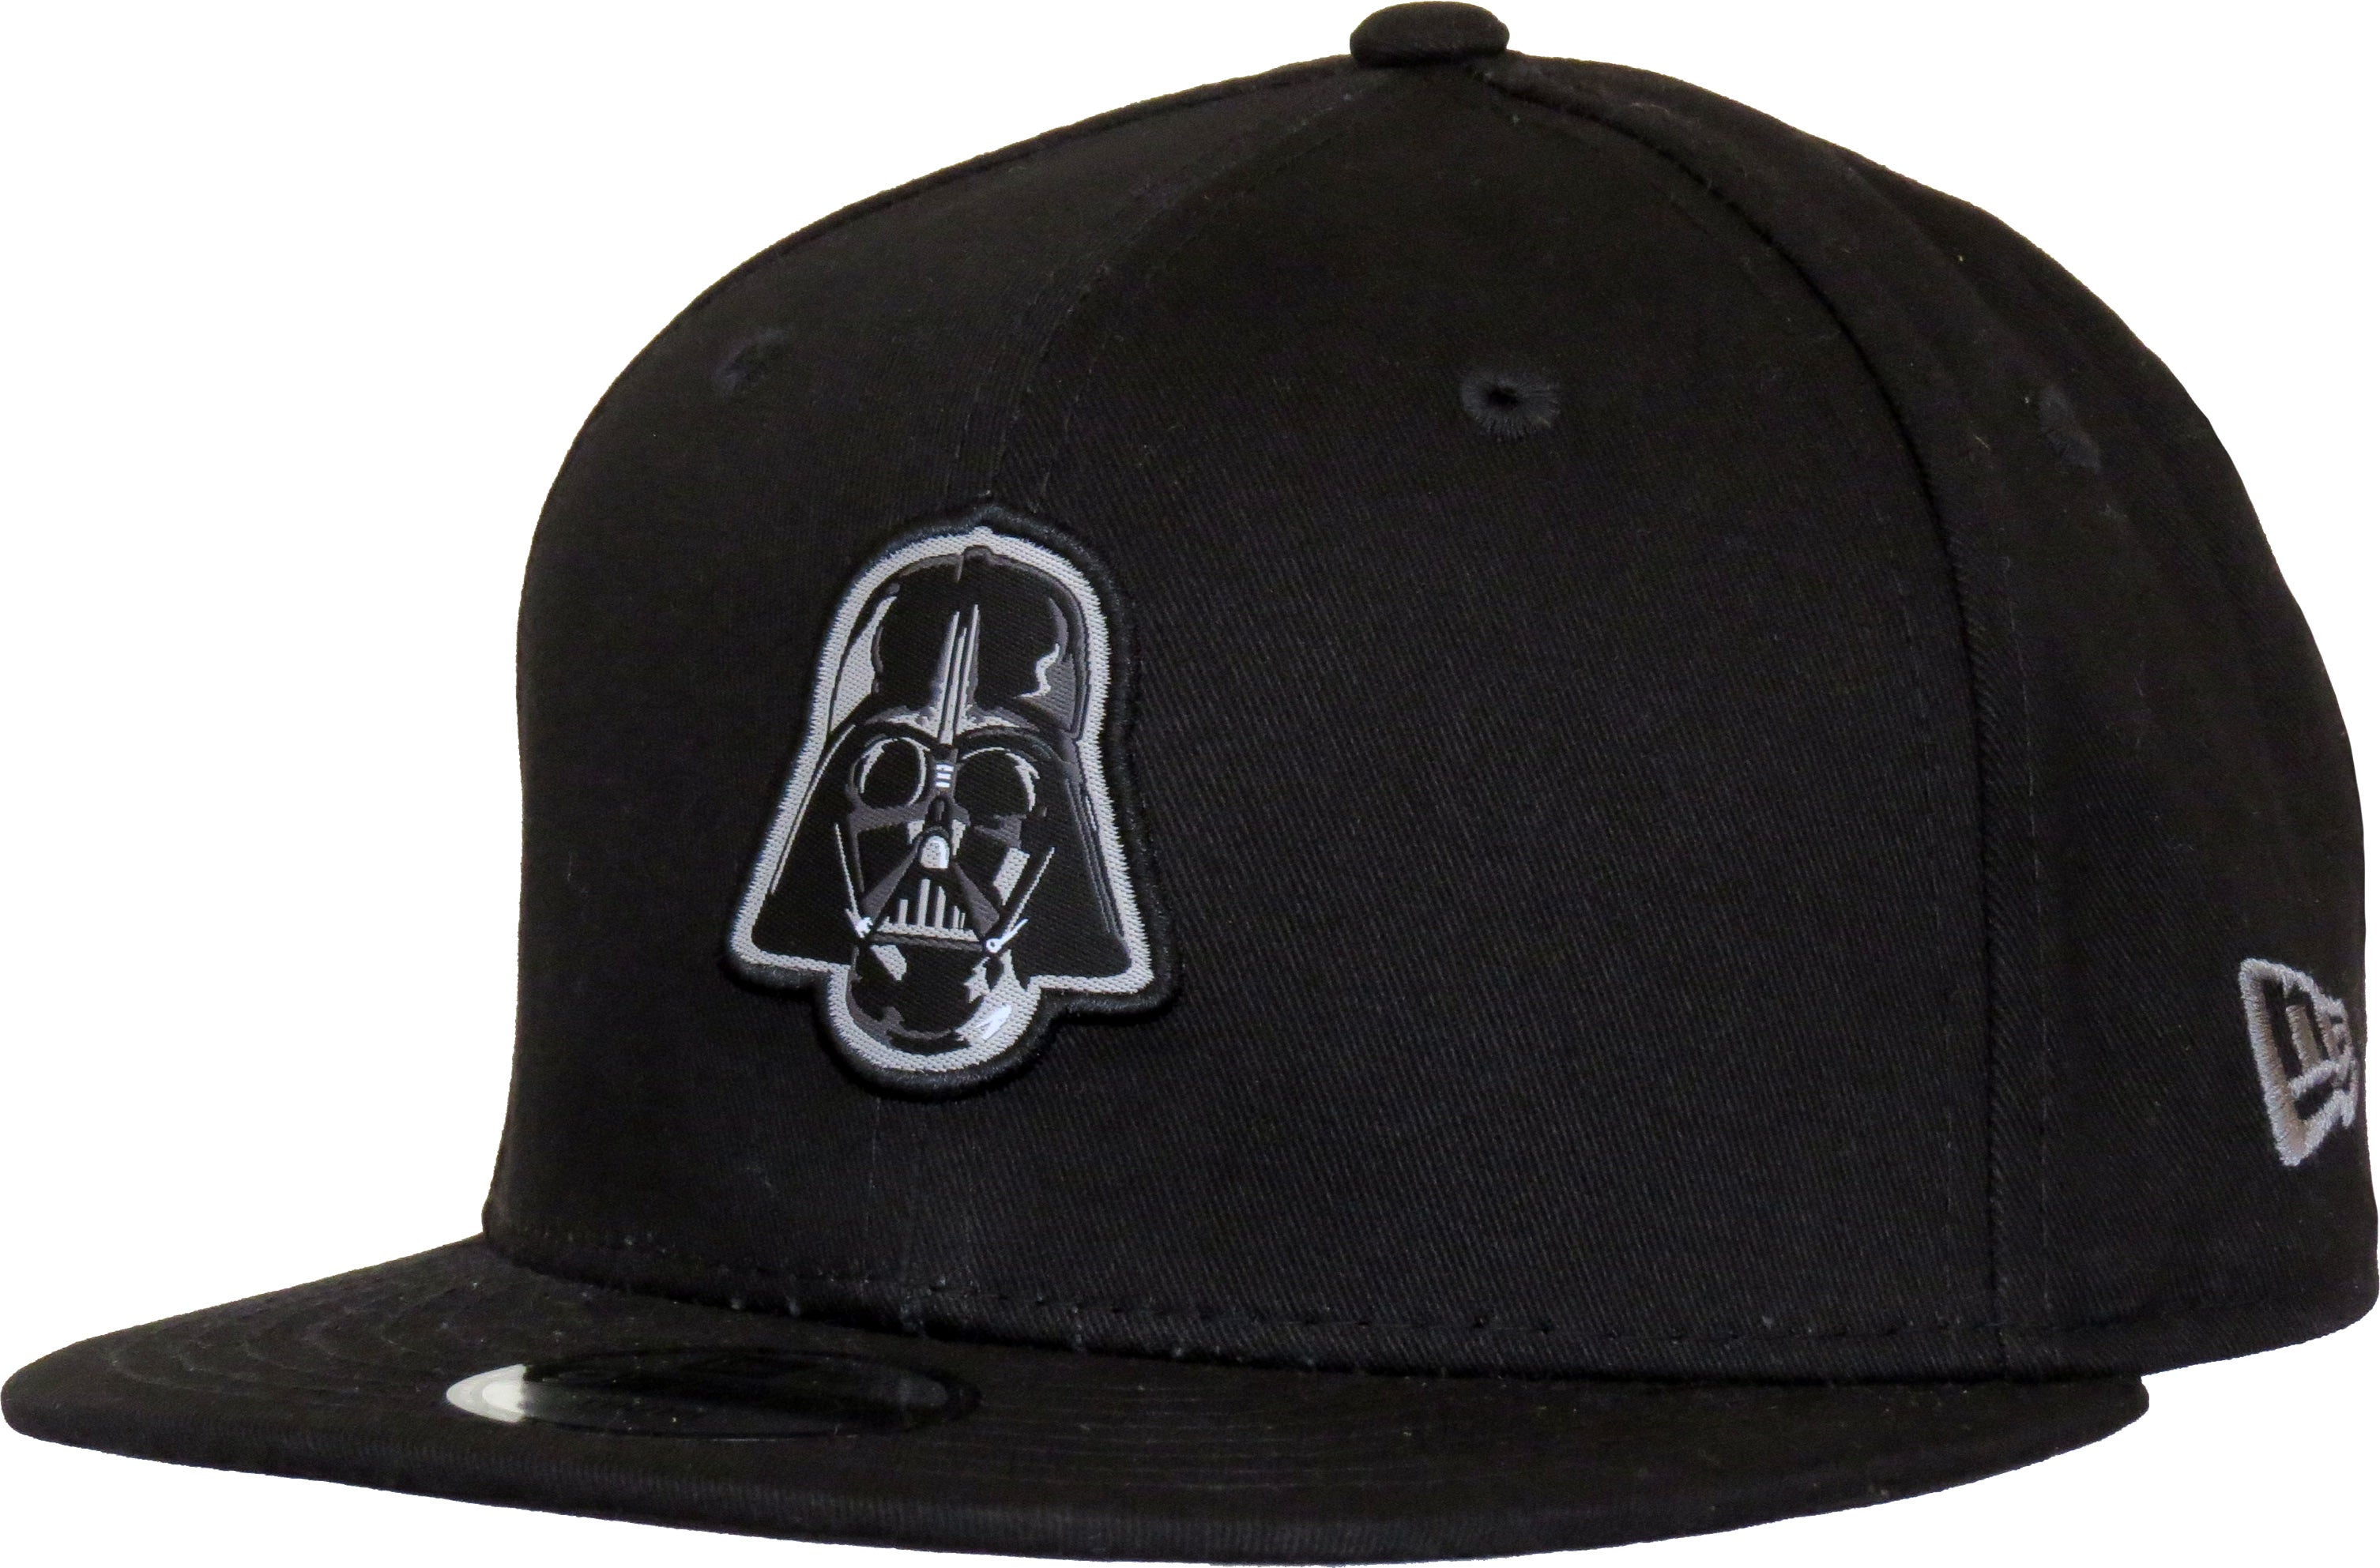 promo code 84901 071f8 Star Wars New Era 950 Kids Darth Vader Snapback Cap (Ages 4 - 10 years –  lovemycap